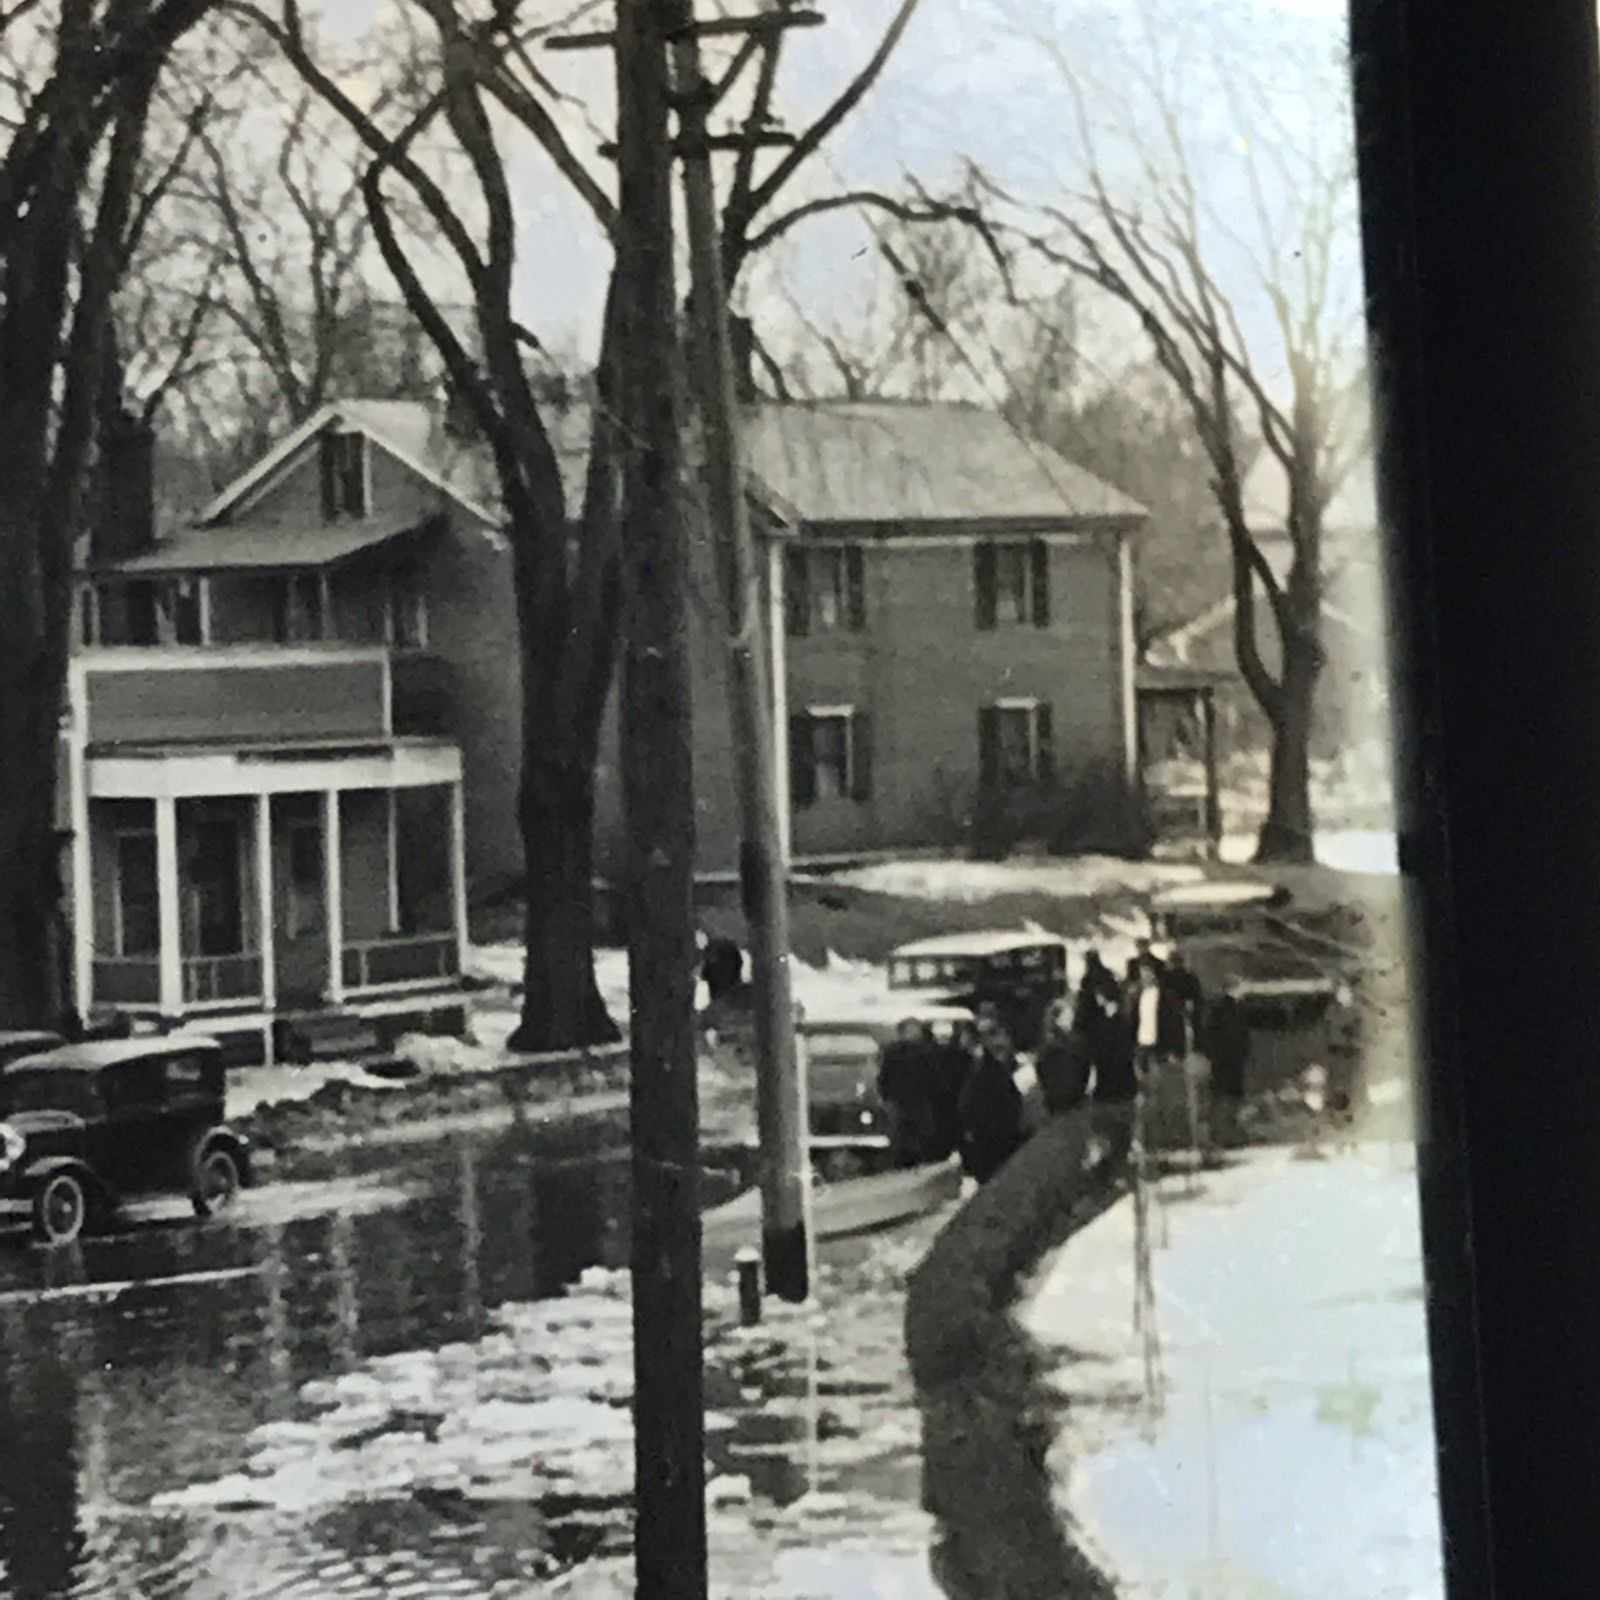 Vtg Magic Lantern Glass Slide Photo Flooded Town Streets Old Cars